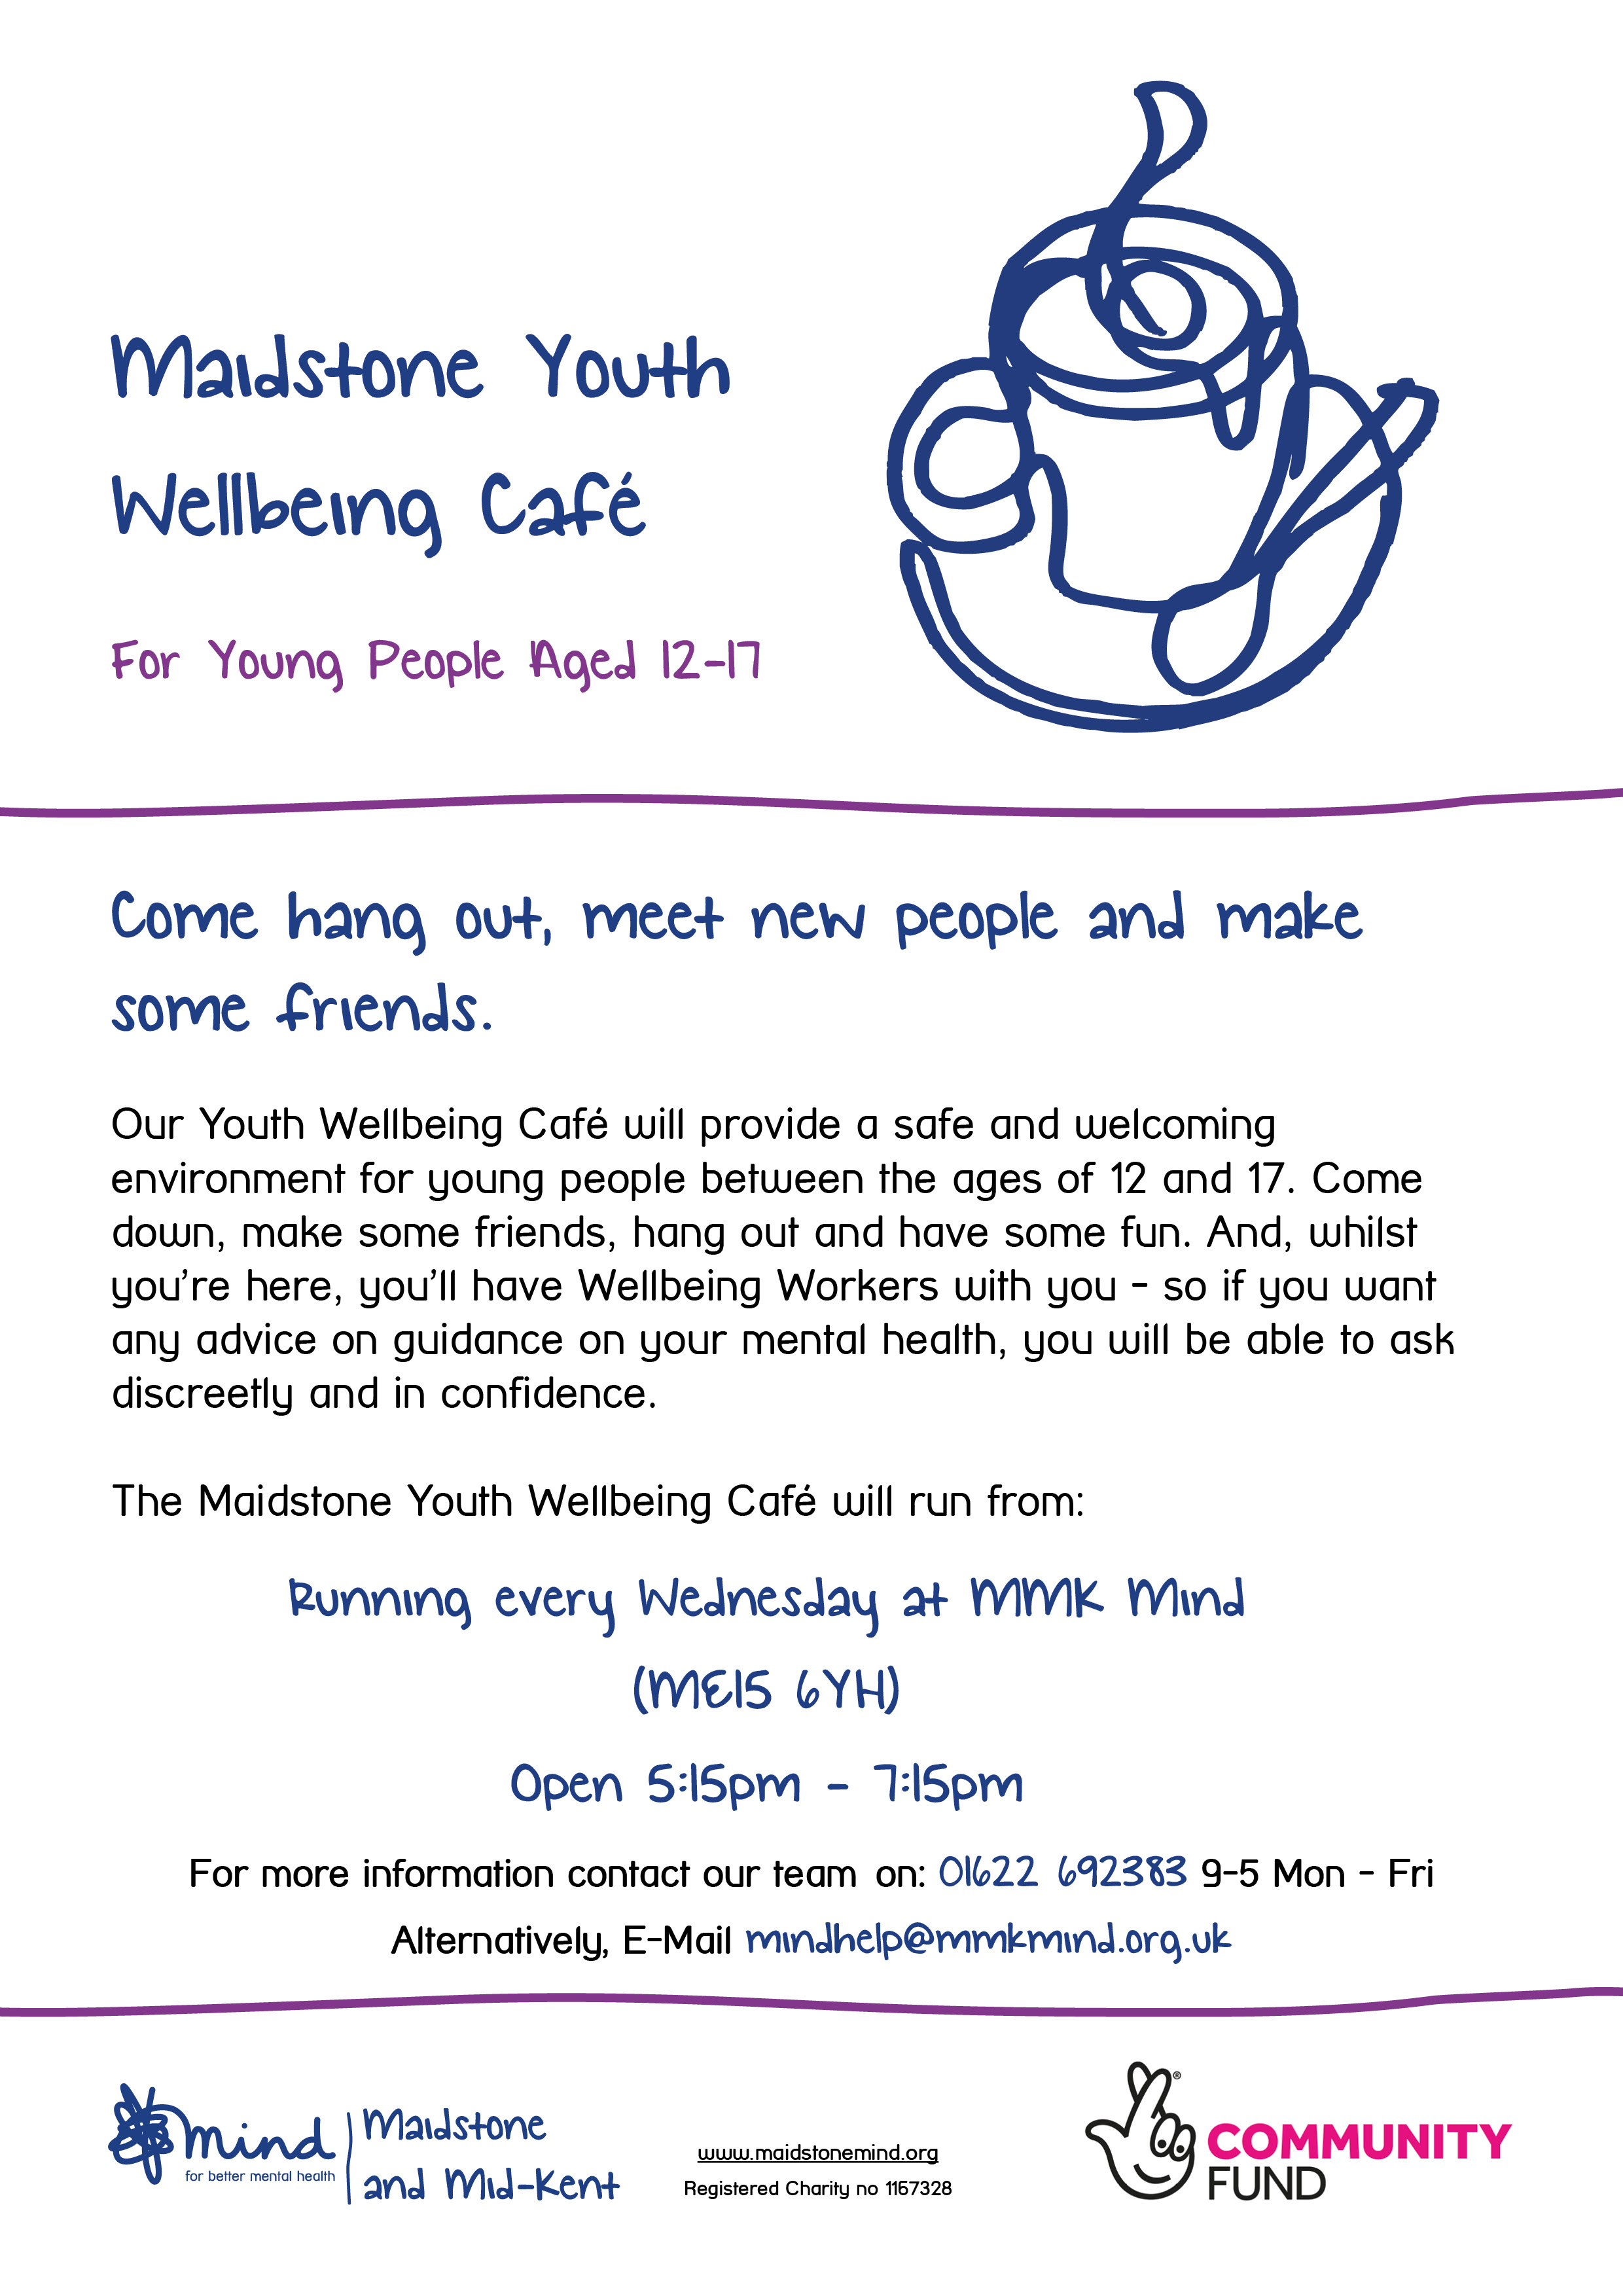 Youth Wellbeing Cafe In Maidstone - Maidstone Youth Wellbeing Café. For Young People Aged 12-17. Come hang out, meet new people and make some friends. Our Youth Wellbeing Café will provide a safe and welcoming environment for young people between the ages of 12 and 17. Come down, make some friends, hang out and have some fun. And, whilst you're here, you'll have Wellbeing Workers with you - so if you want any advice on guidance on your mental health, you will be able to ask discreetly and in confidence. The Maidstone Youth Wellbeing Café will run from: Running every Wednesday at MMK Mind (ME15 6YH). Open 5:15pm - 7:15pm. For more information contact Xenia on: 01622 692383 9-5 Mon - Fri Alternatively, E-Mail mindhelp@mmkmind.org.uk